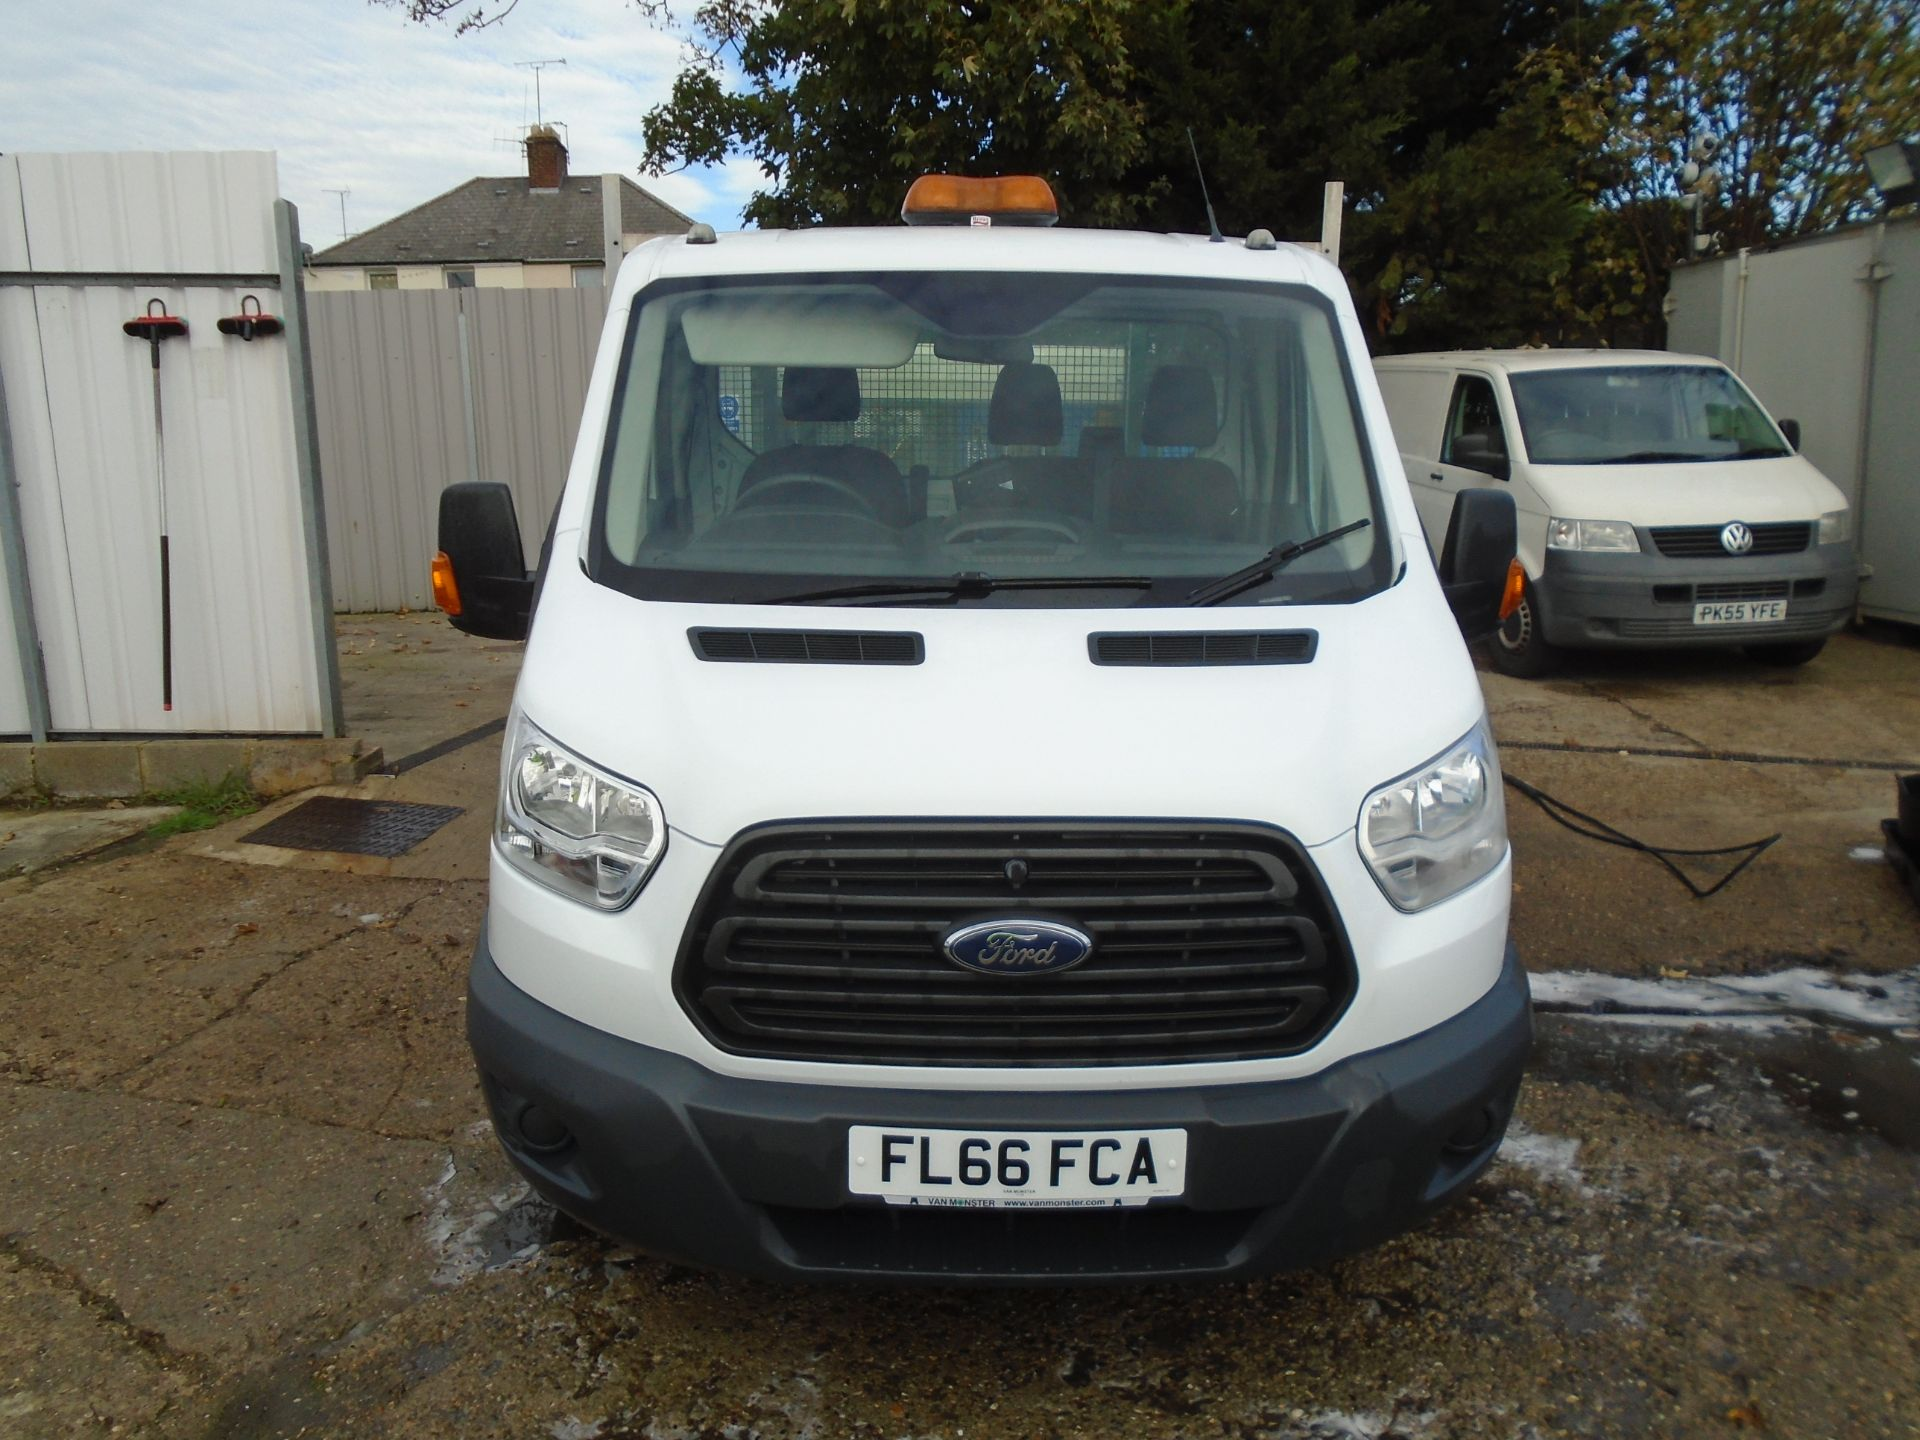 2016 Ford Transit 2.2 Tdci 125Ps Chassis Cab (FL66FCA) Image 2